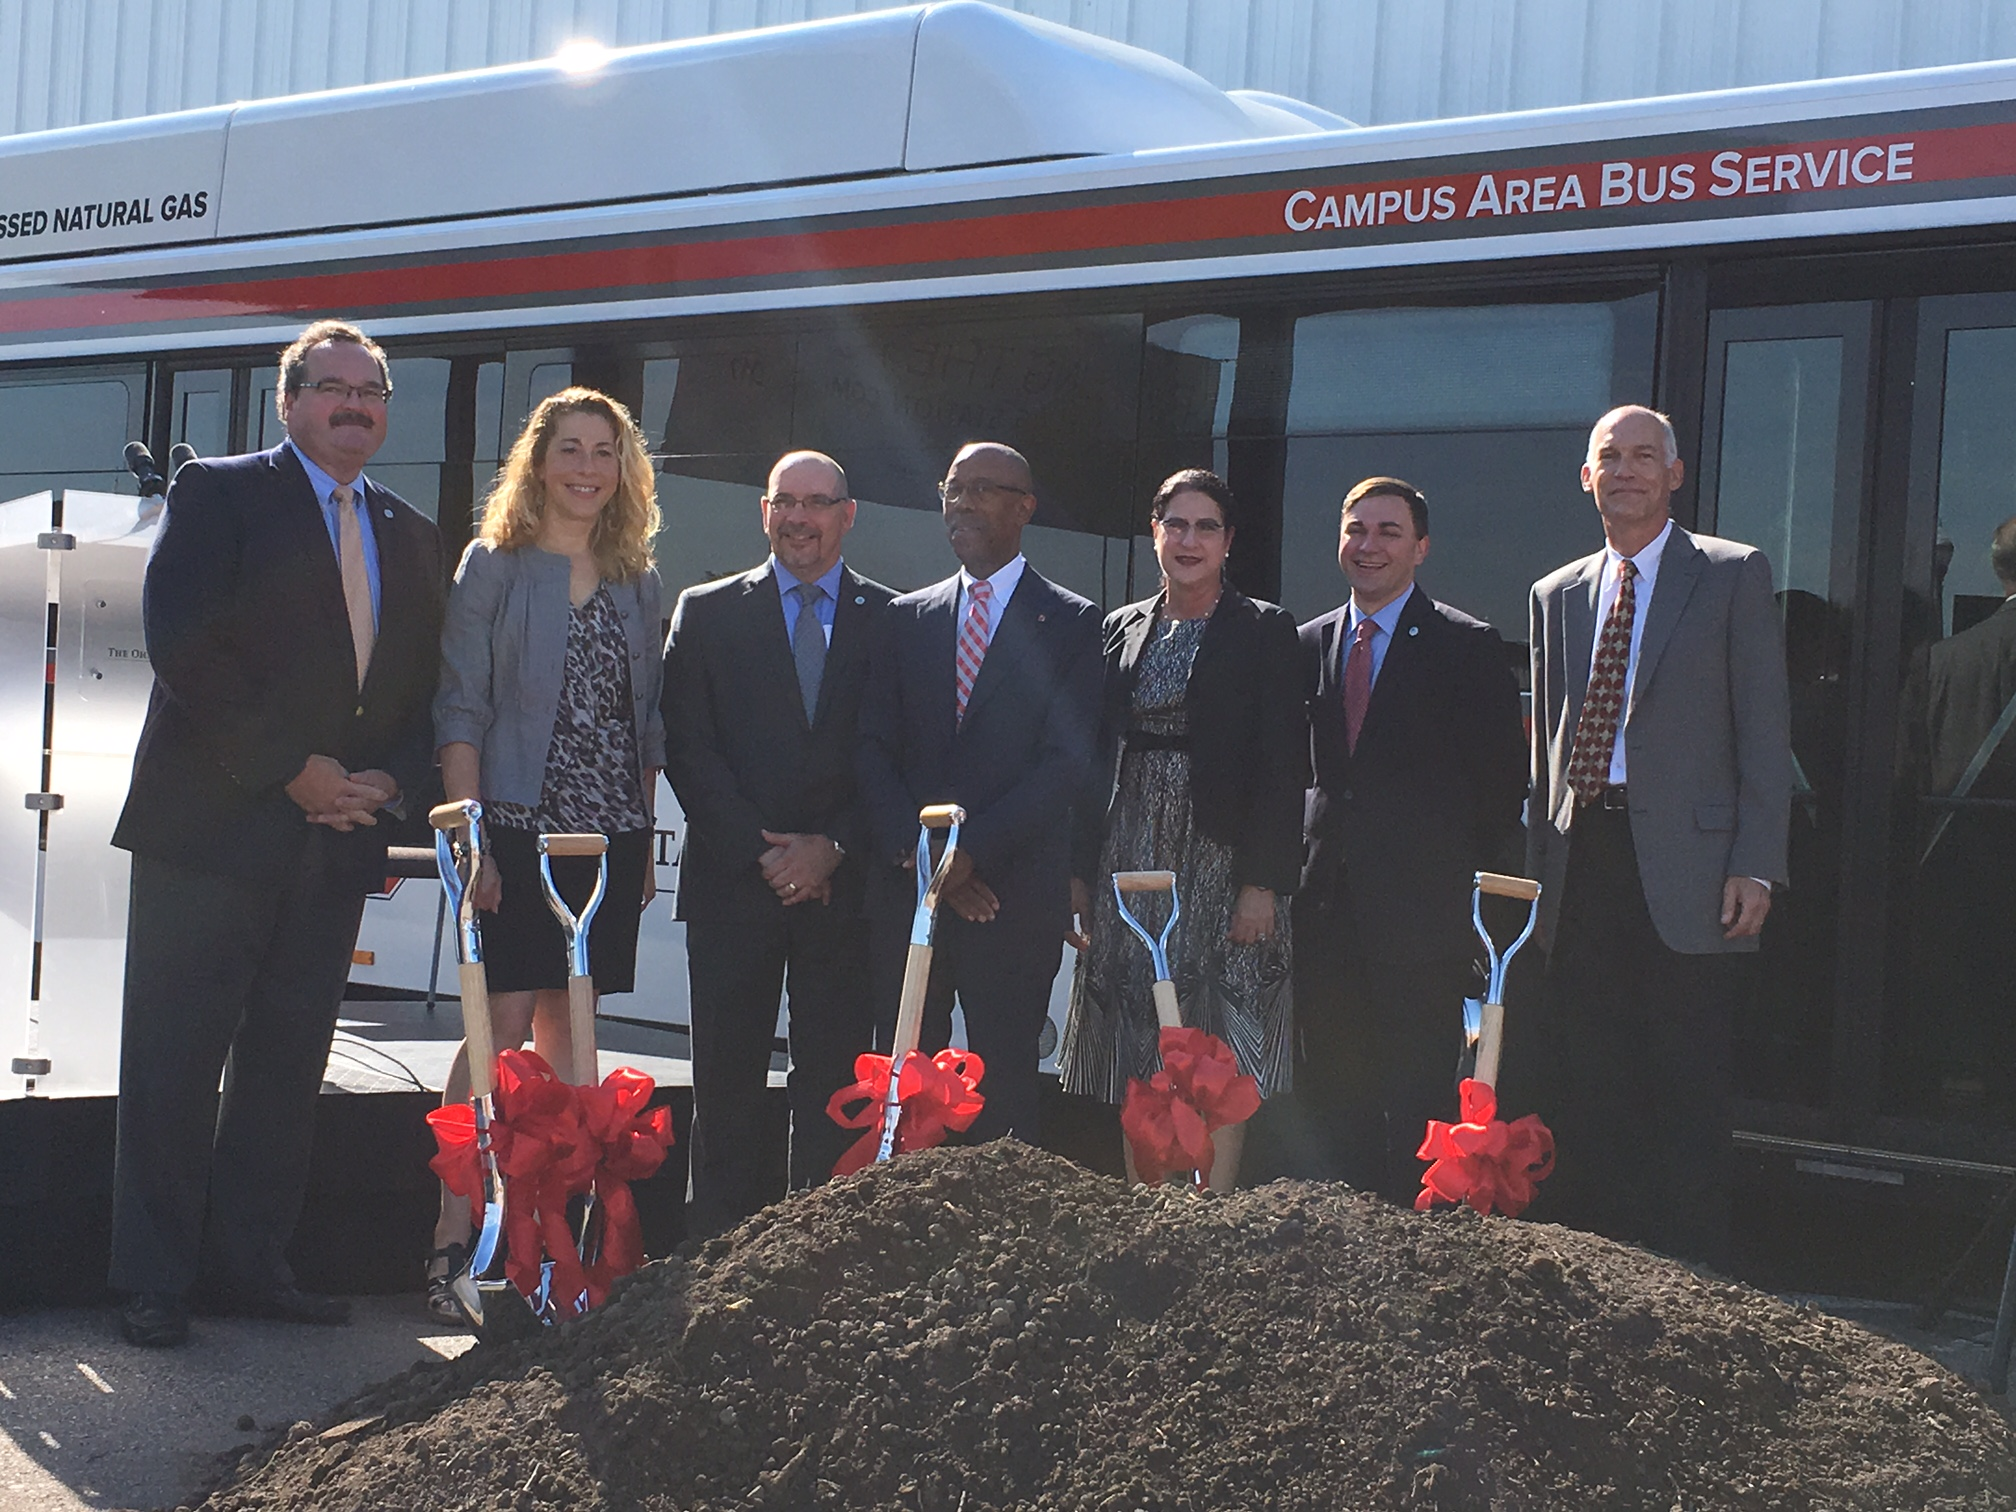 The Ohio State University breaks ground on CNG fueling station